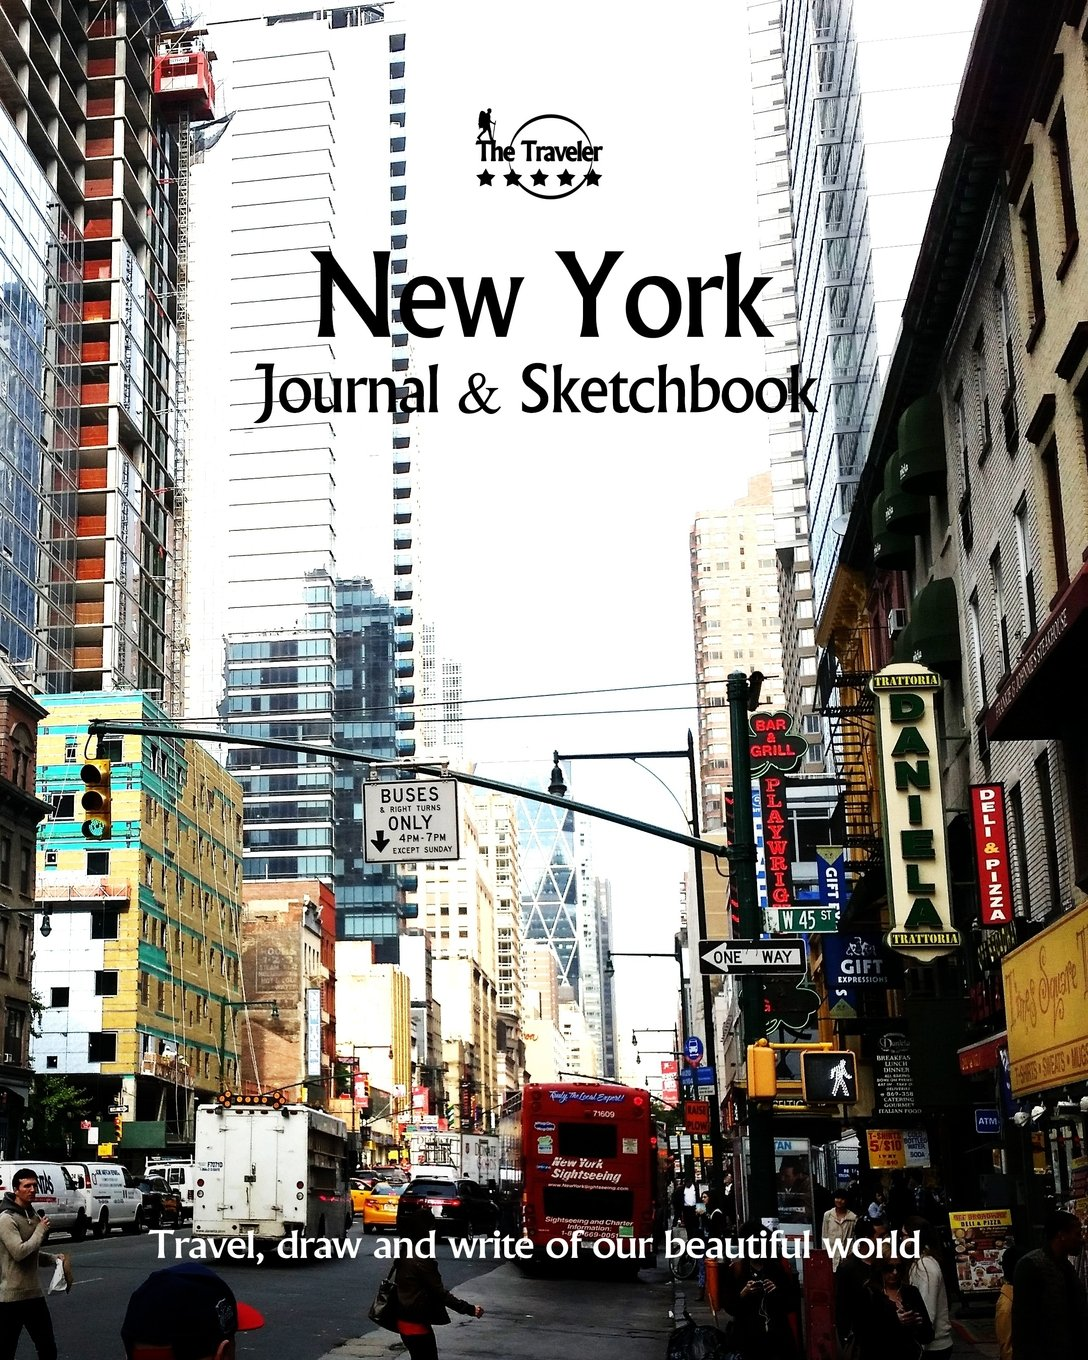 Download New York Journal & Sketchbook: Travel, Draw and Write of our Beautiful World (Journals & Sketchbooks / 8X10 Inch 170 Pages) (Volume 87) ebook